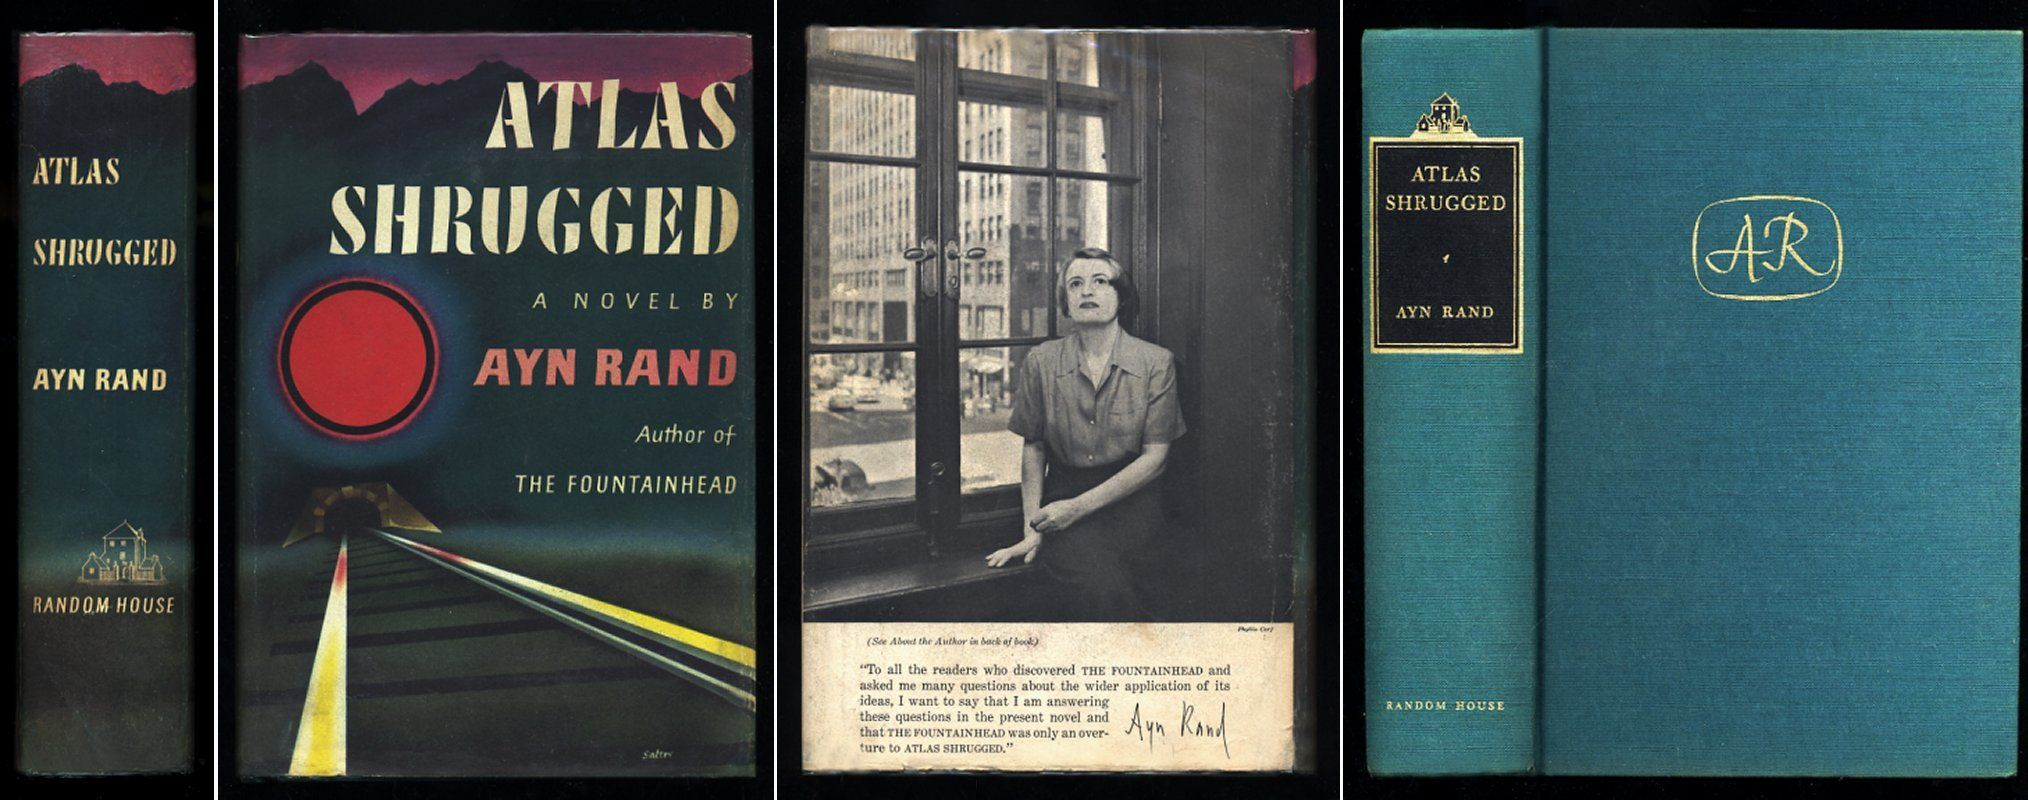 Atlas Shrugged By Ayn Rand 1st Edition 1957 From Authors Artists And Biblio Com